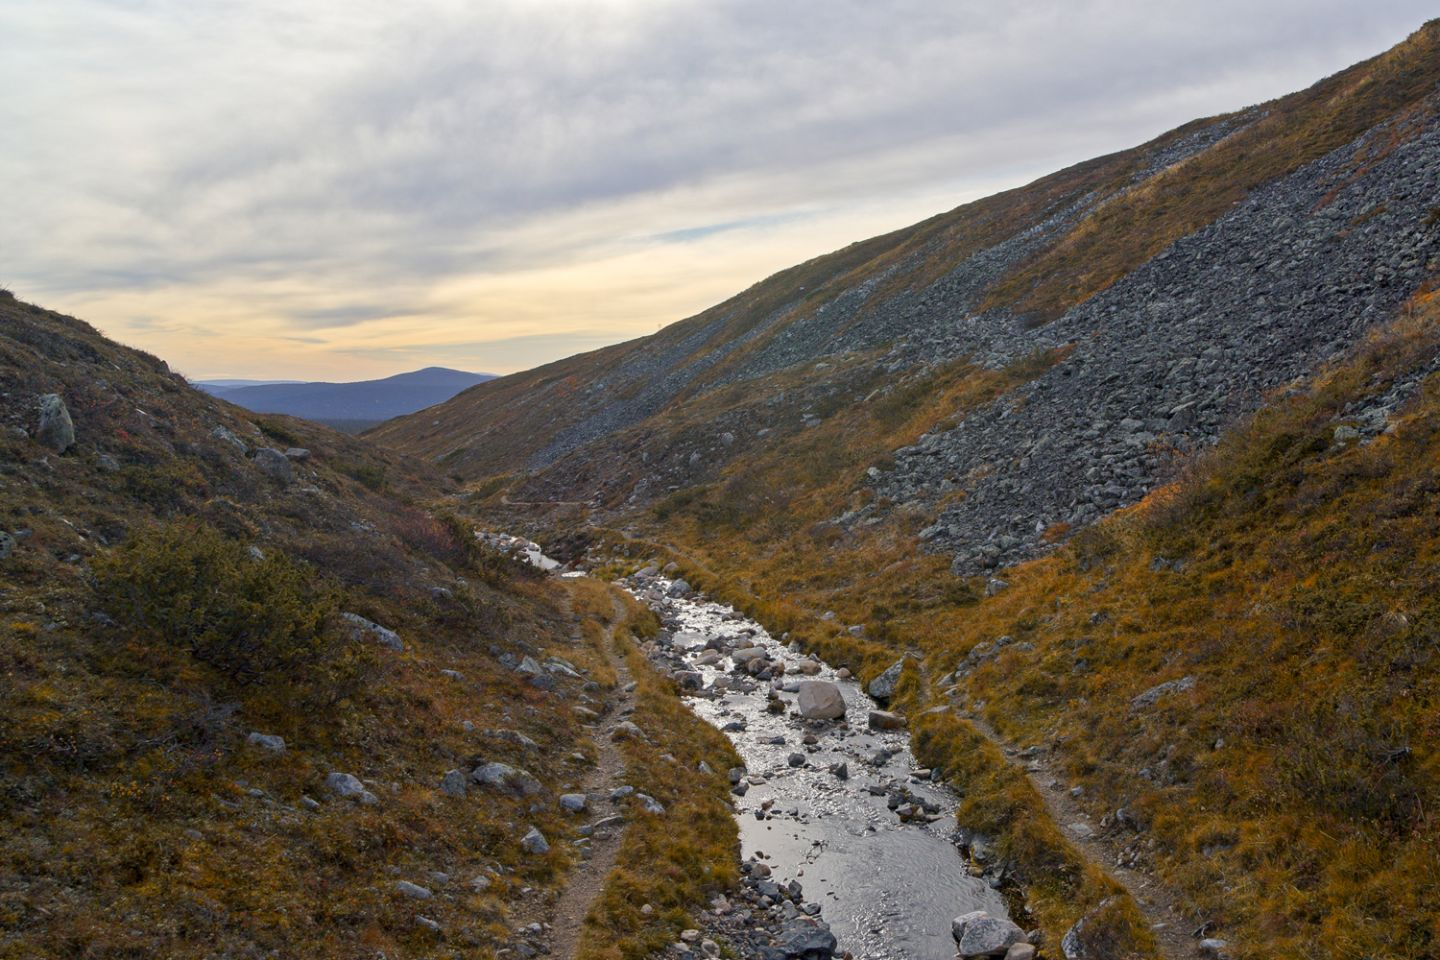 Stream in Pallas-Yllästunturi National Park, Sound of Lapland, SCAPES